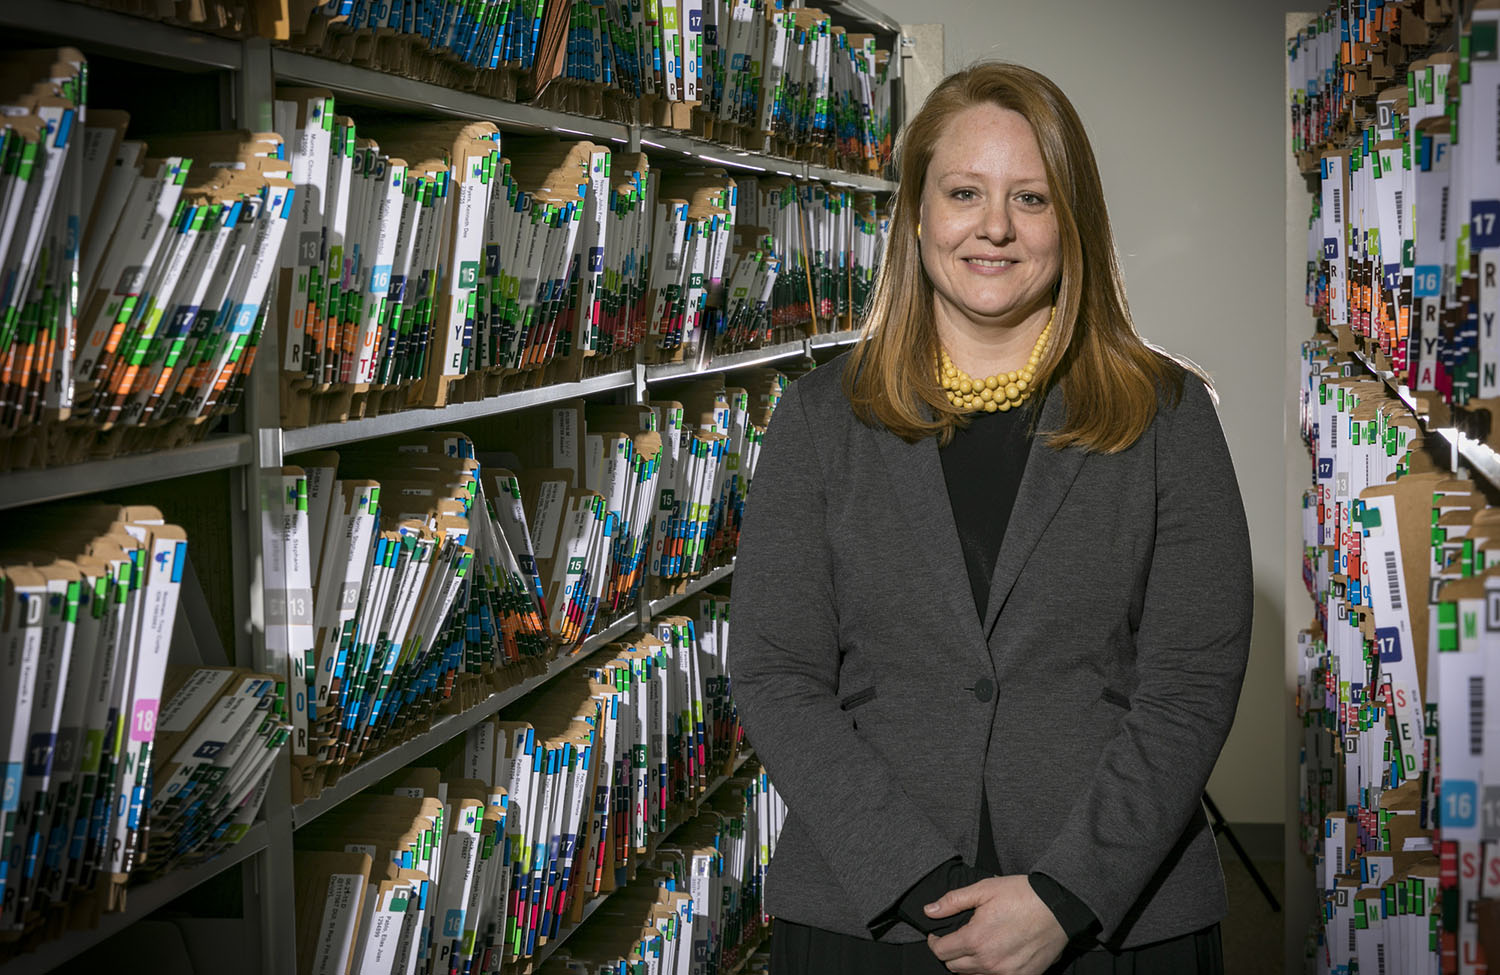 Sarah Buchanan, director of social services at the Knox County Public Defender's Community Law Office, poses among many shelves of file folders